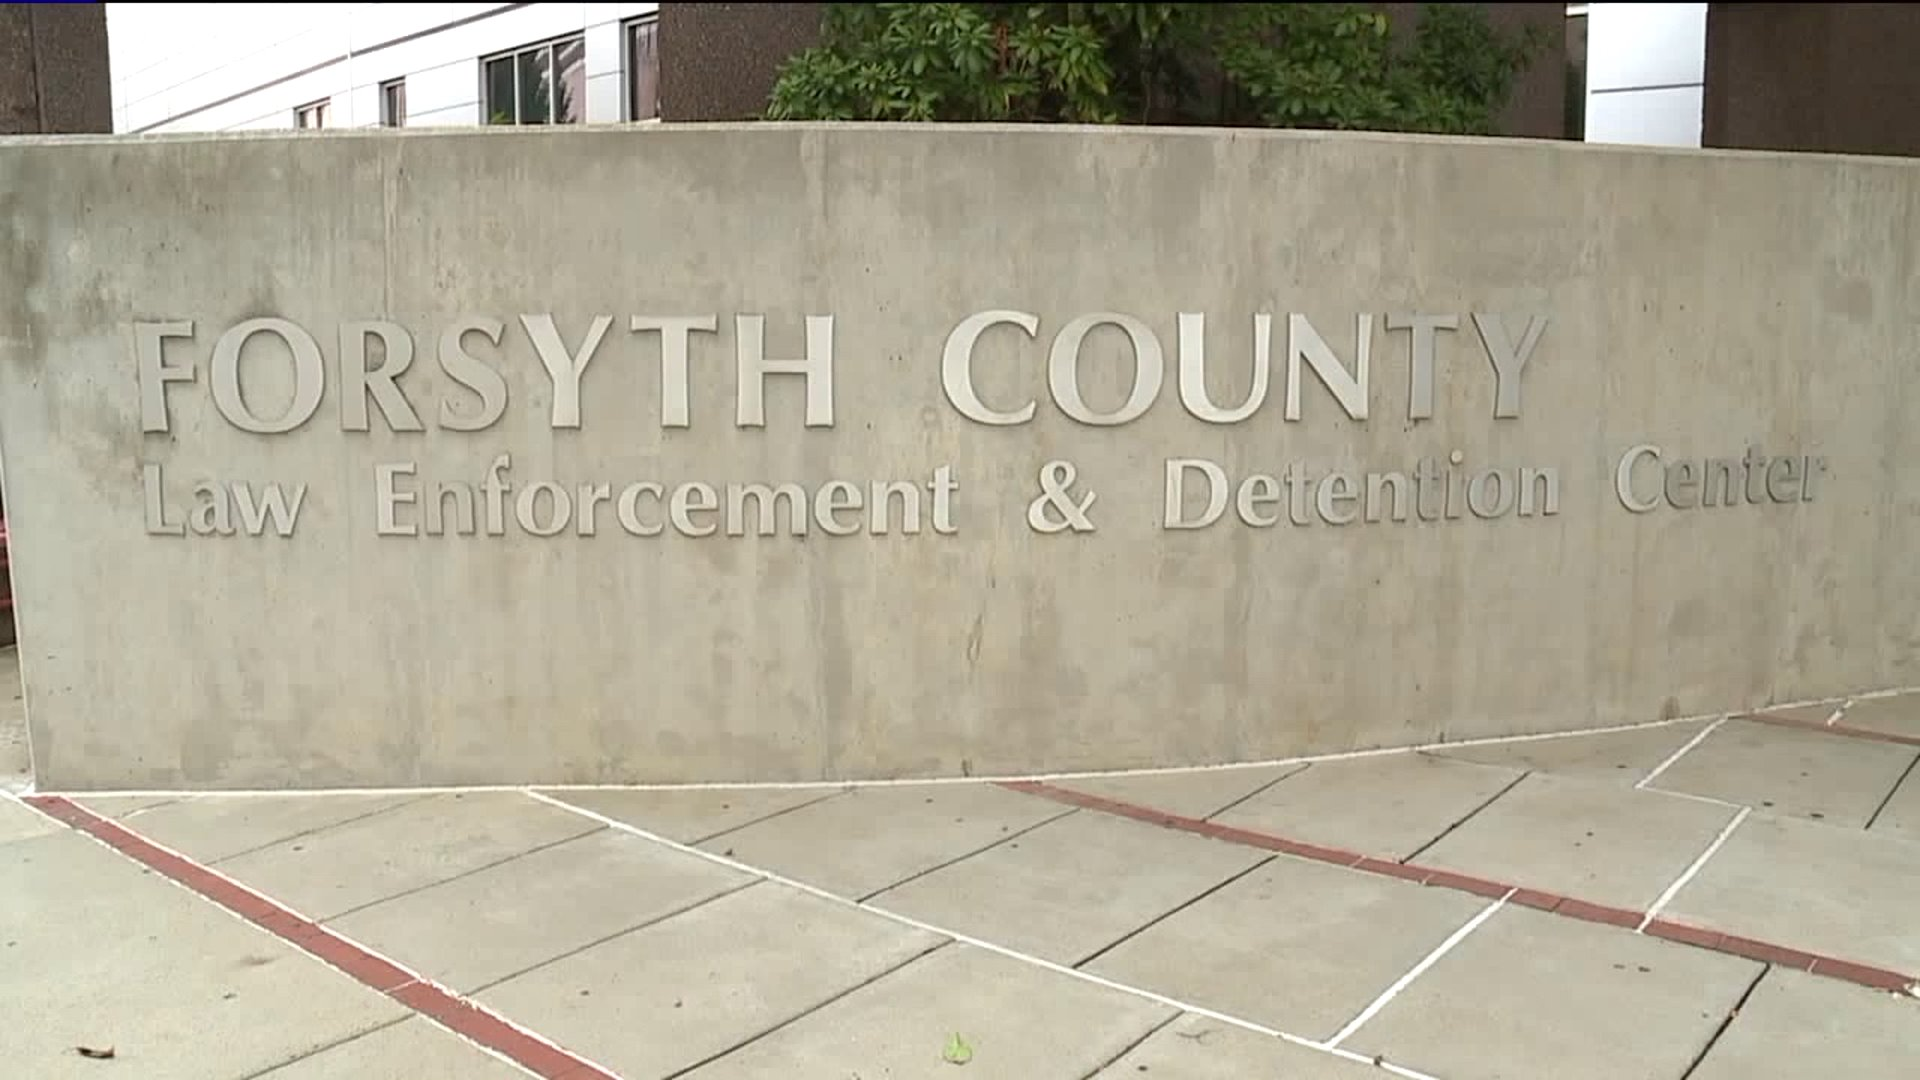 Forsyth County Law Enforcement Detention Center (WGHP file photo)